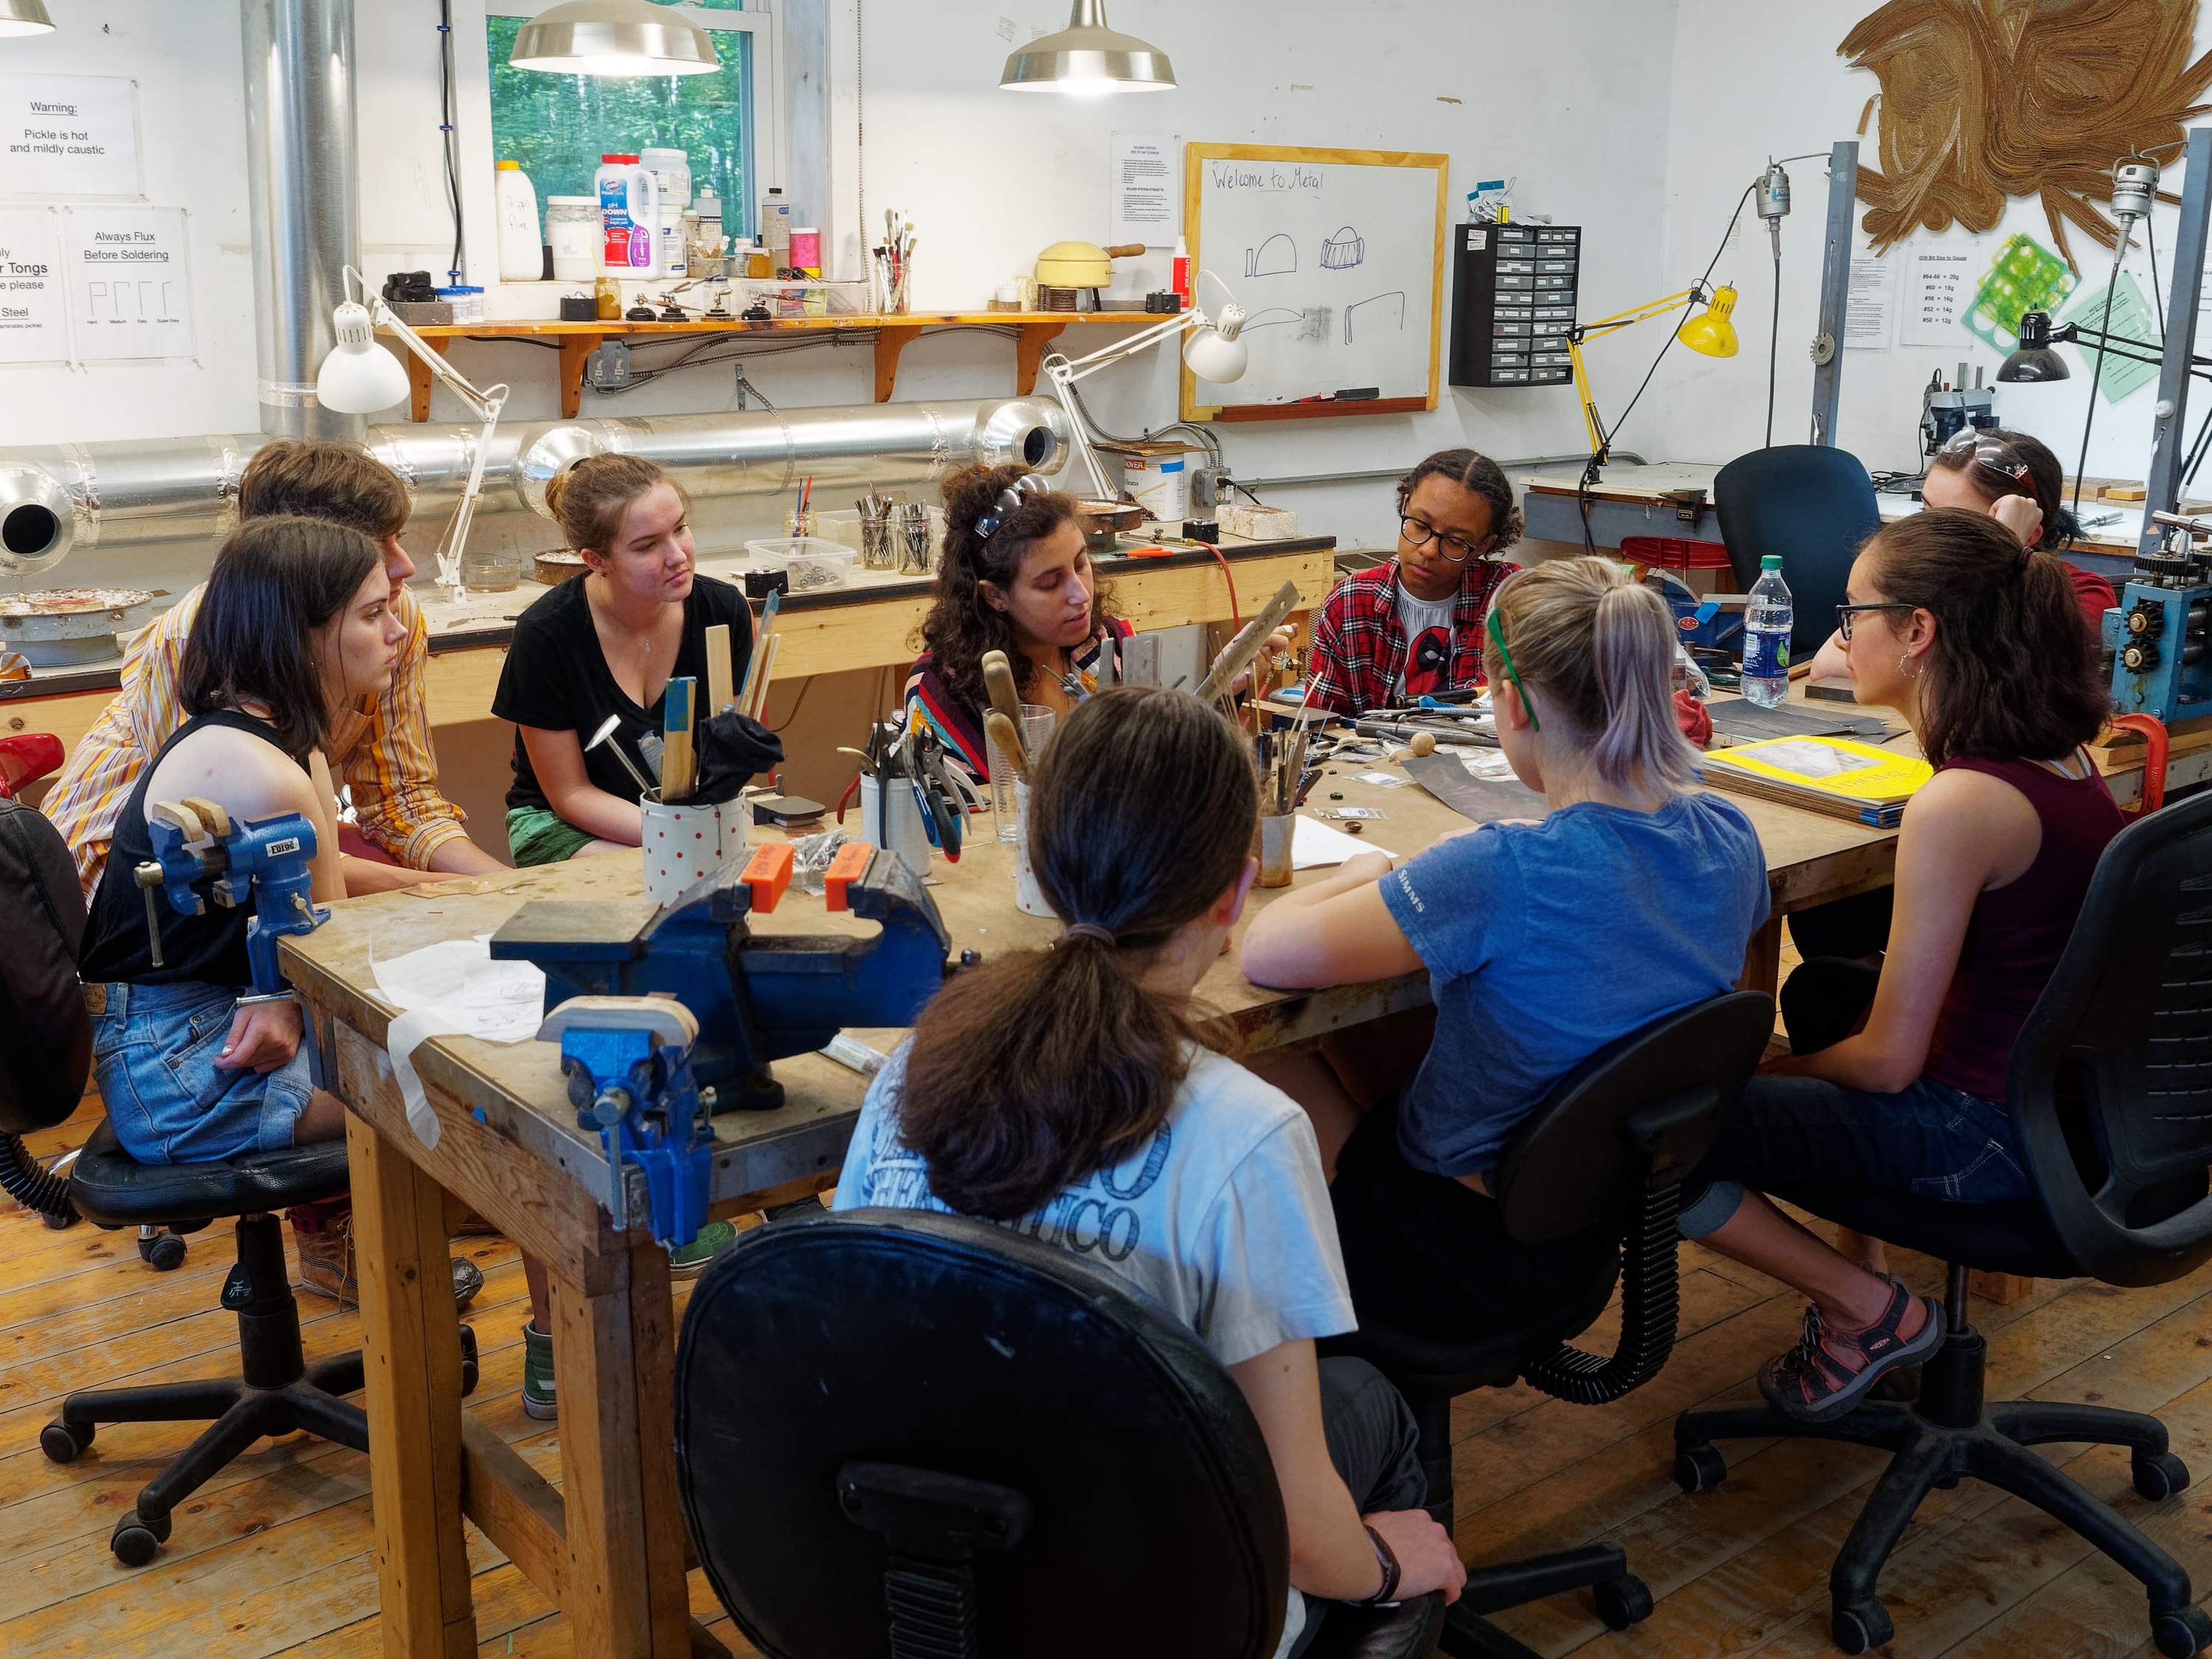 metalsmithing studio, learning art, workshop for teens